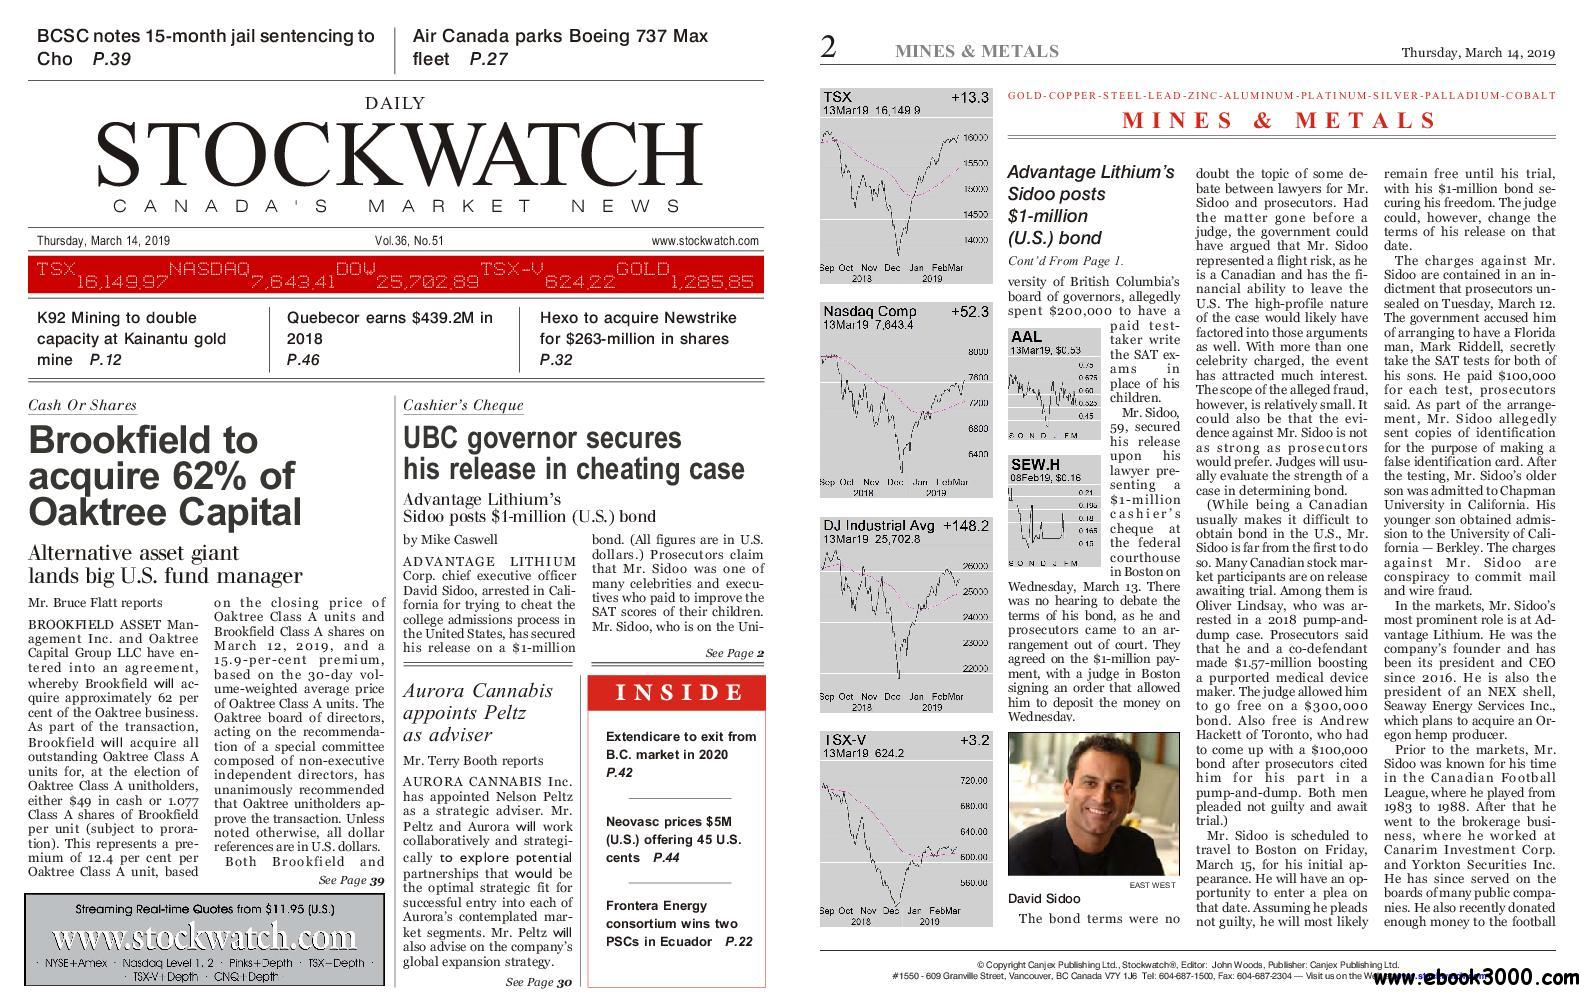 Stockwatch - Canada Daily - March 14, 2019